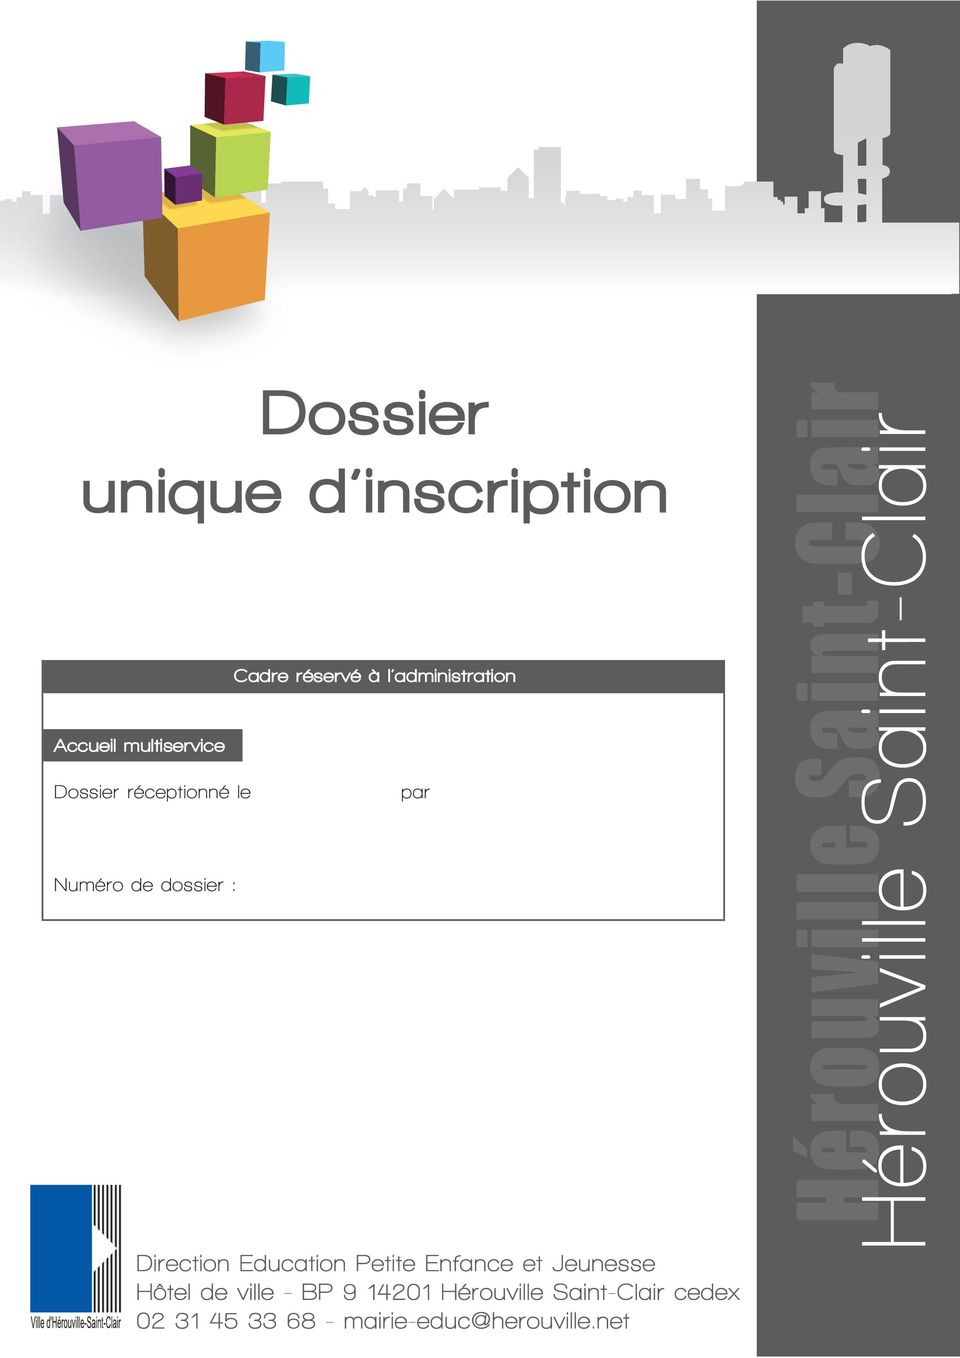 Accueil multiservice Dossier